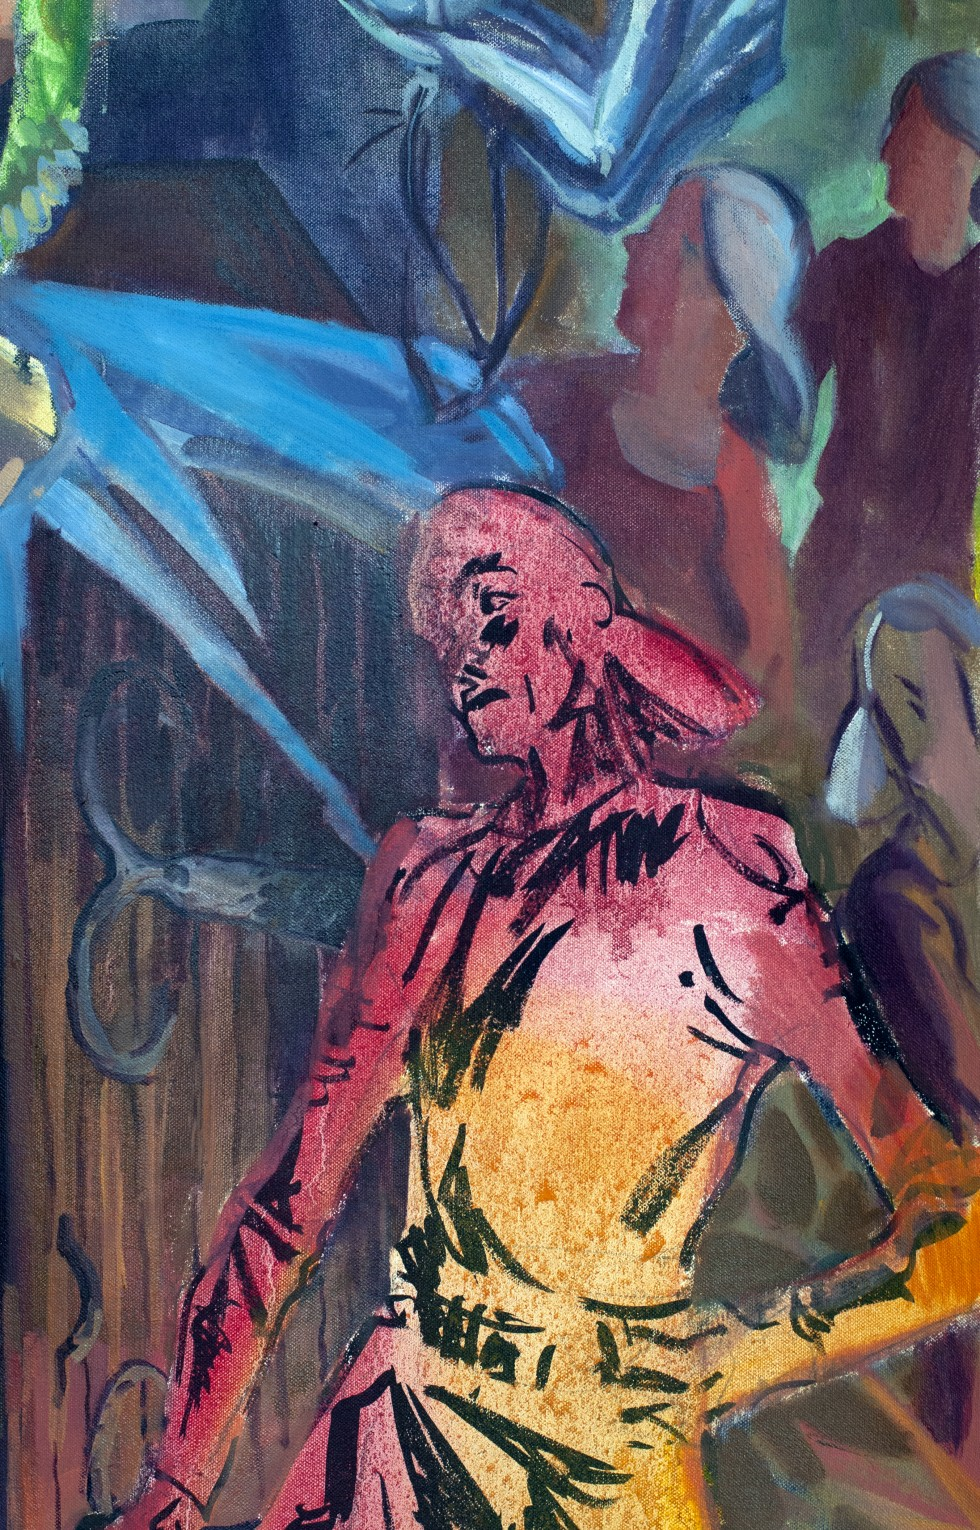 A montage of images, as the figure in red continues to lecture the main character; the noose is placed around his neck. dripping from the noose are strange ethereal sets of fingers and teeth as ghostly hands level a sinister sewing needle. As this climact